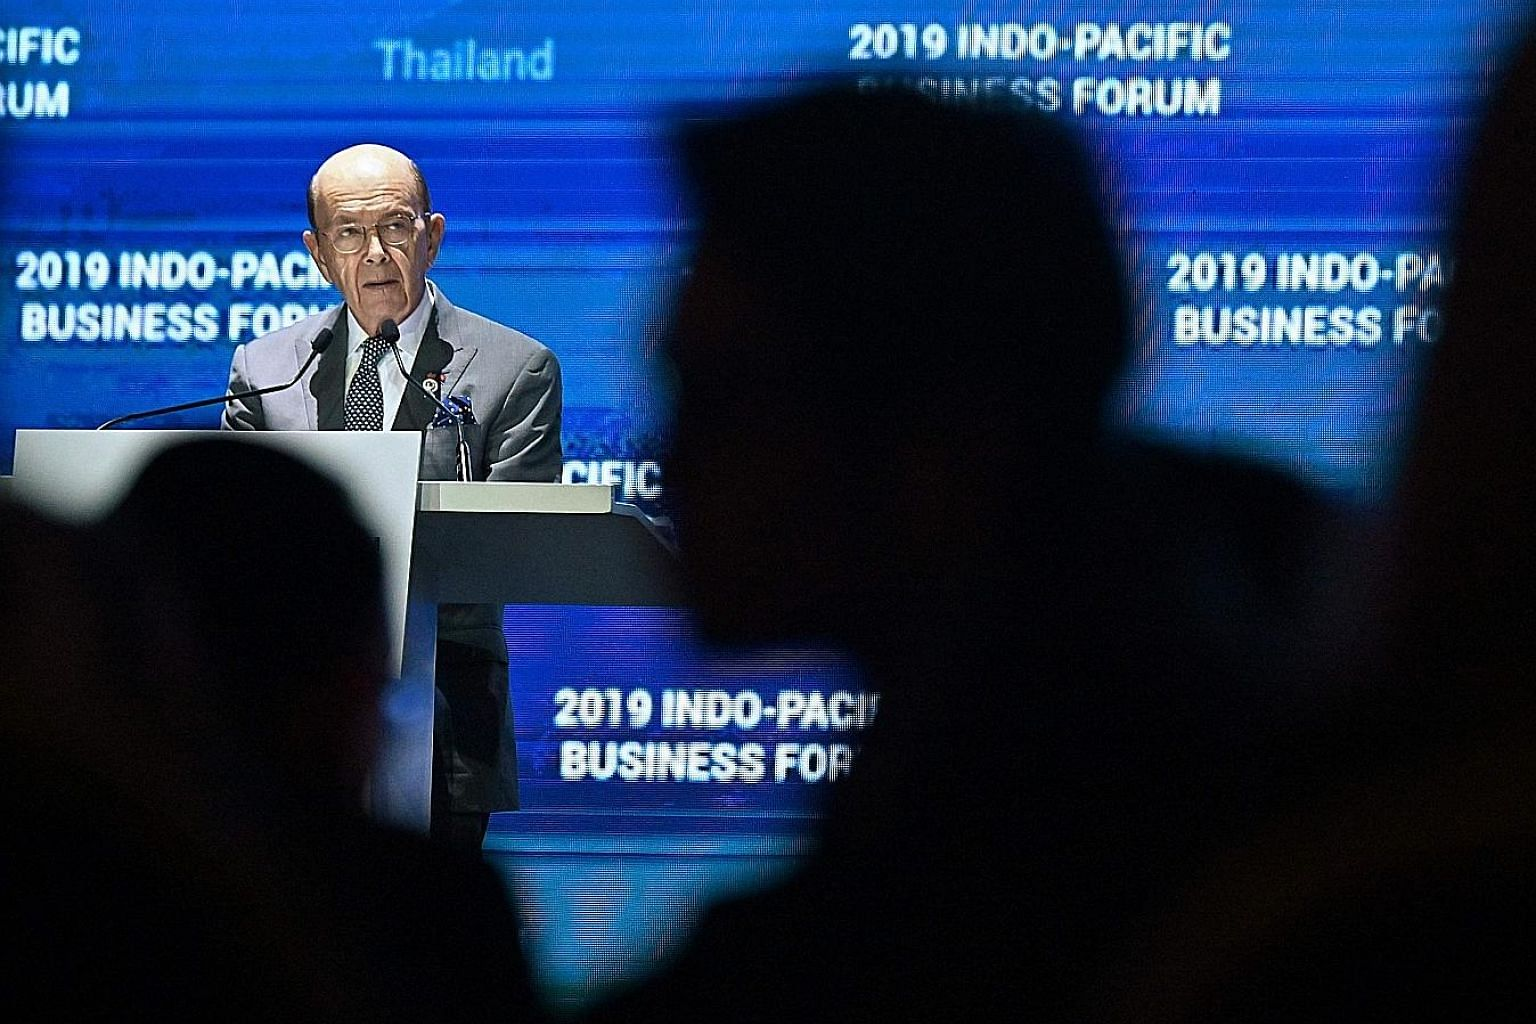 US Secretary of Commerce Wilbur Ross at the Indo-Pacific Business Forum in Bangkok on Nov 4. He has cited many statistics to show that the United States is serious about cooperation with countries in the Indo-Pacific region, which includes India and